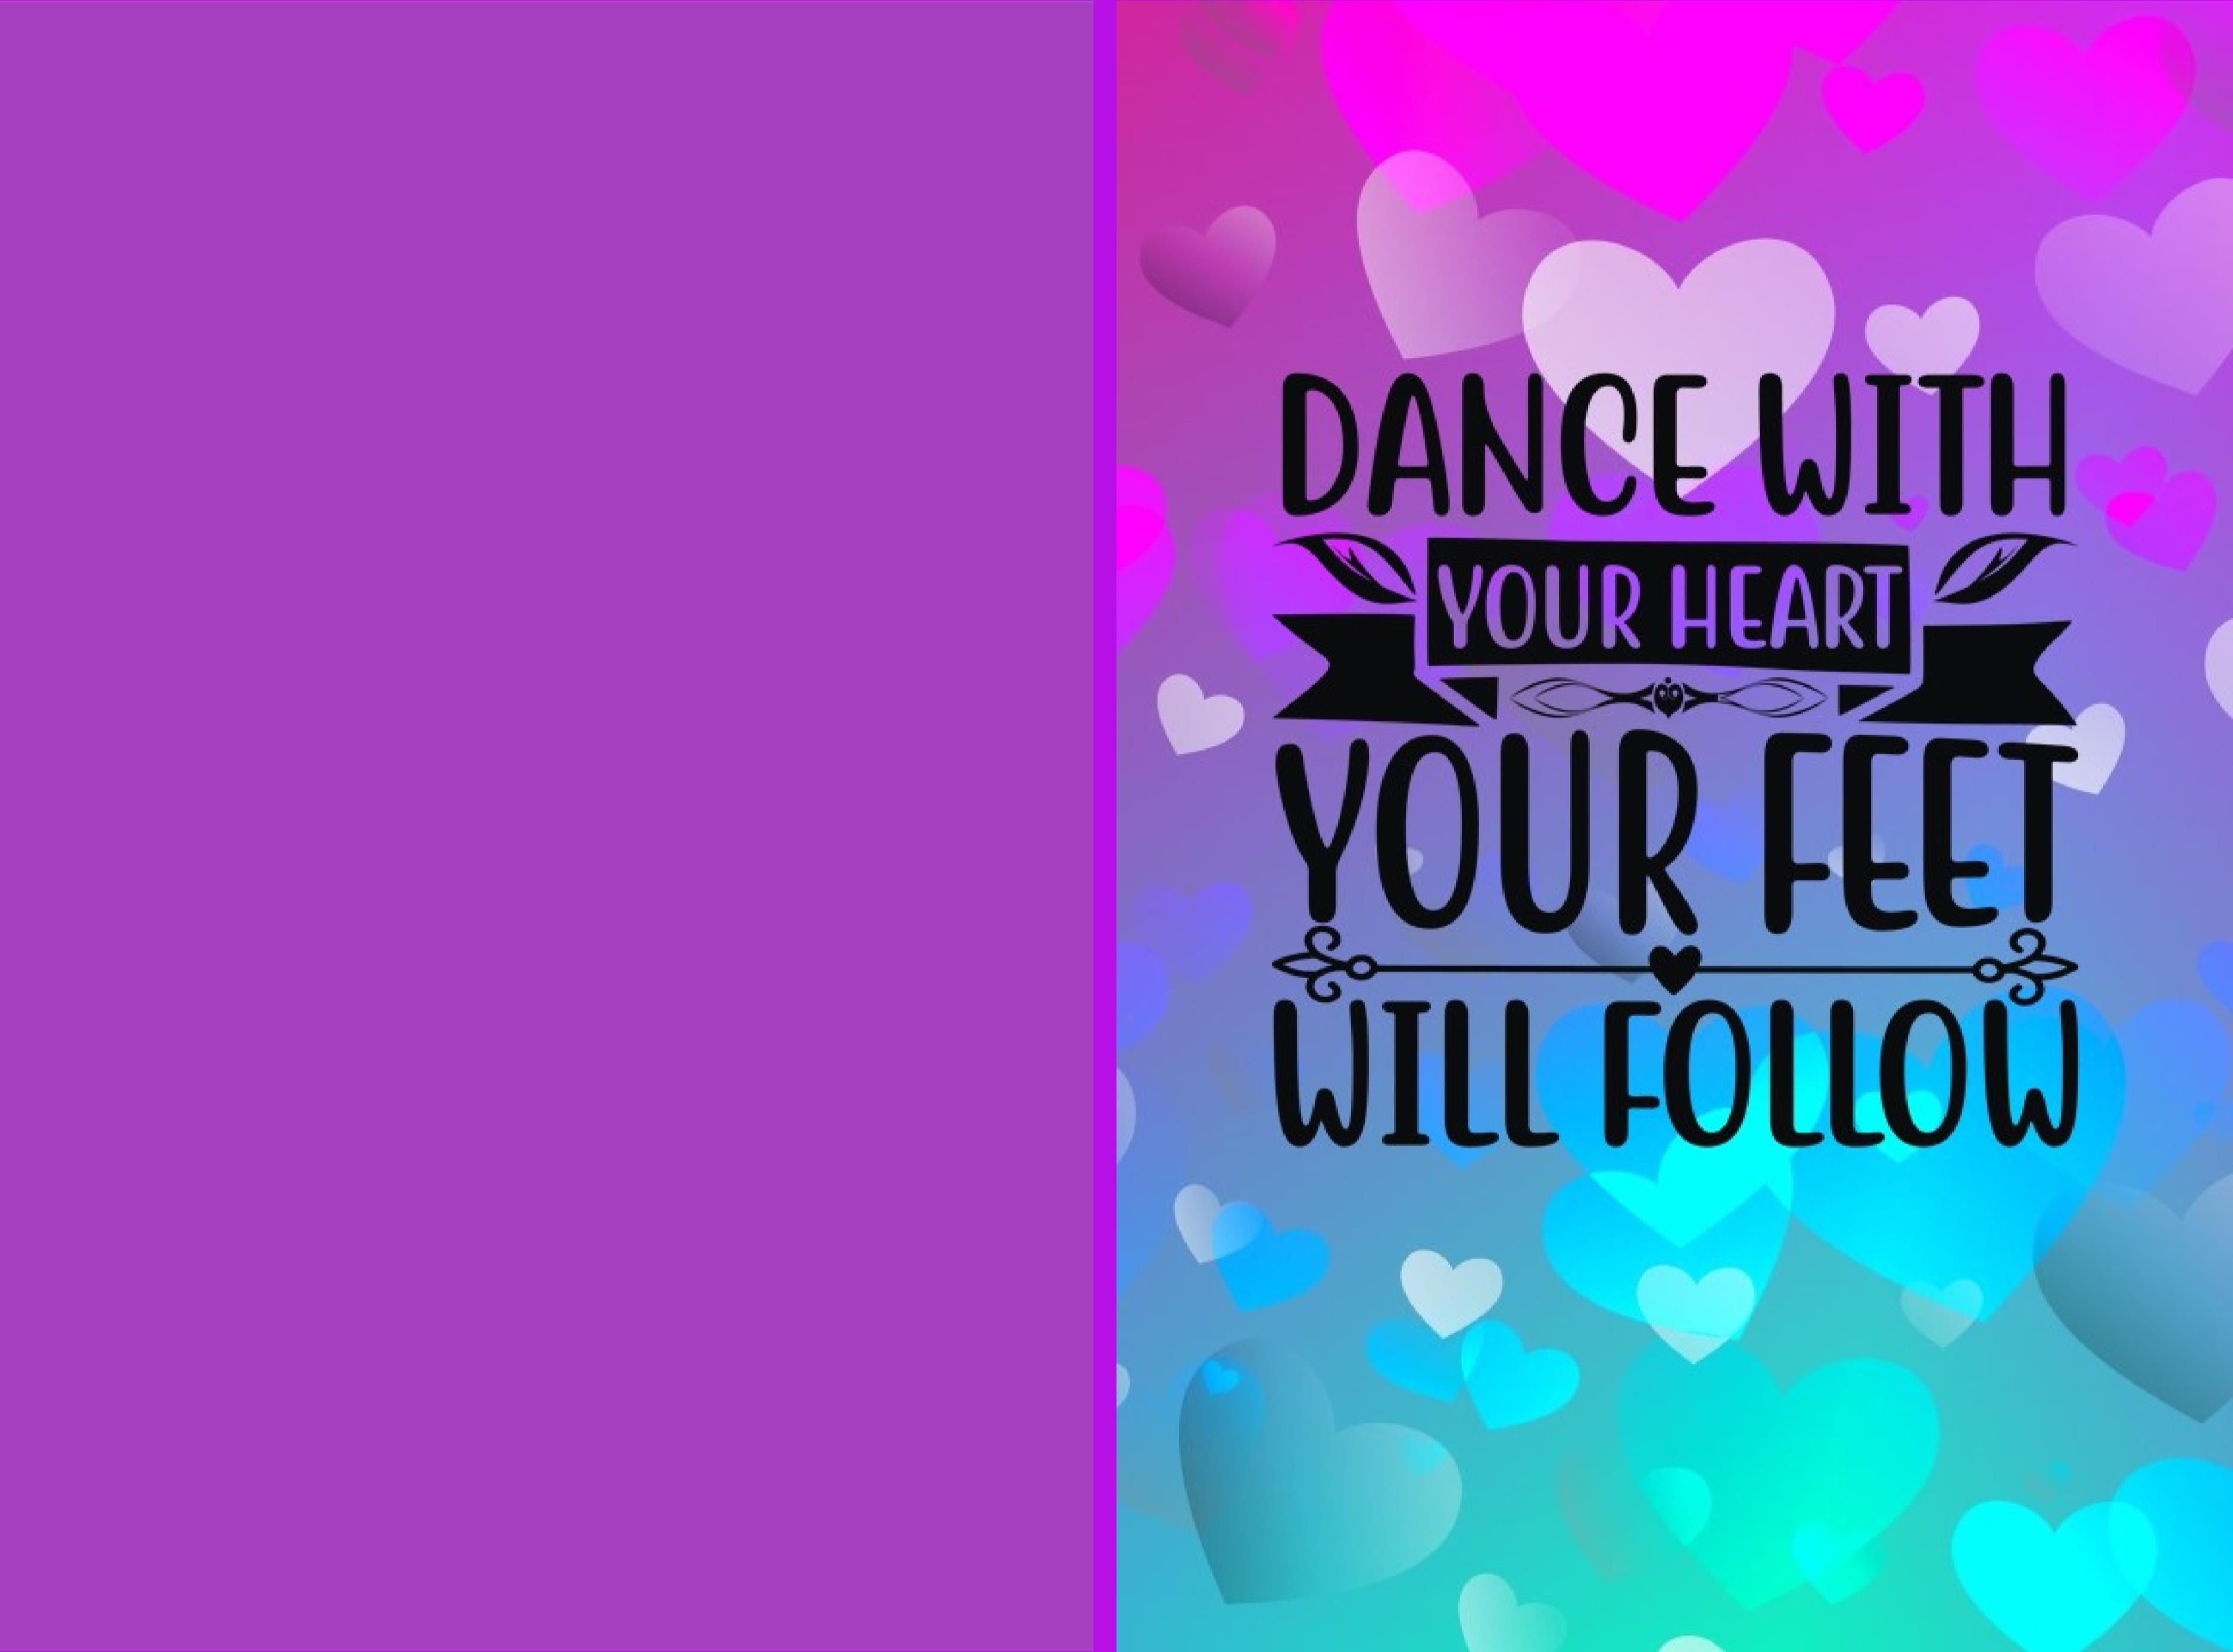 Dance With Your Heart Your Feet Will Follow cover image